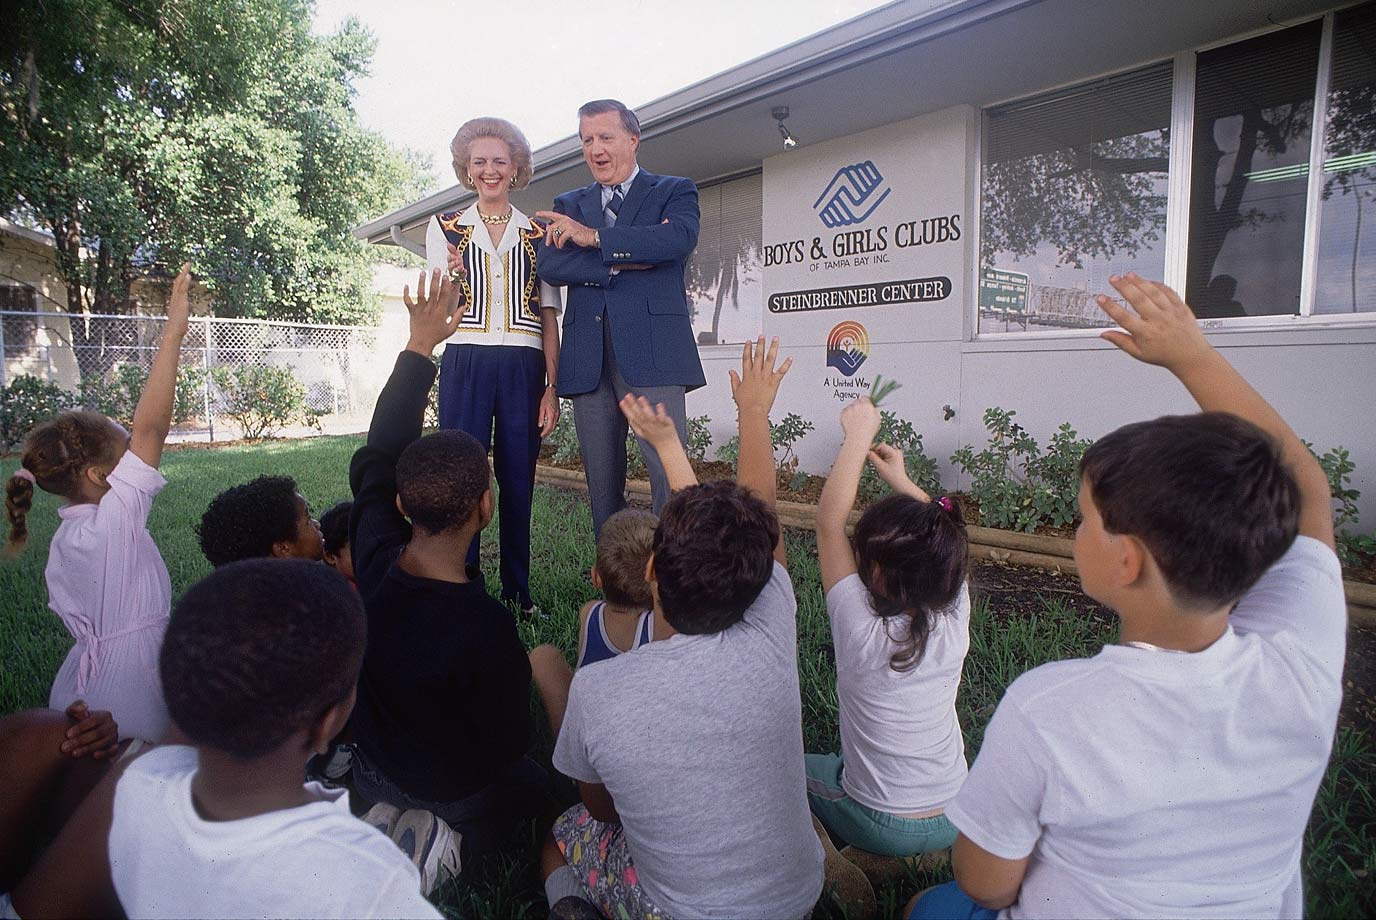 George Steinbrenner and his wife Joan answer questions from youth members of the Steinbrenner Center Boys & Girls Club on May 3, 1990 in Tampa, Fla.